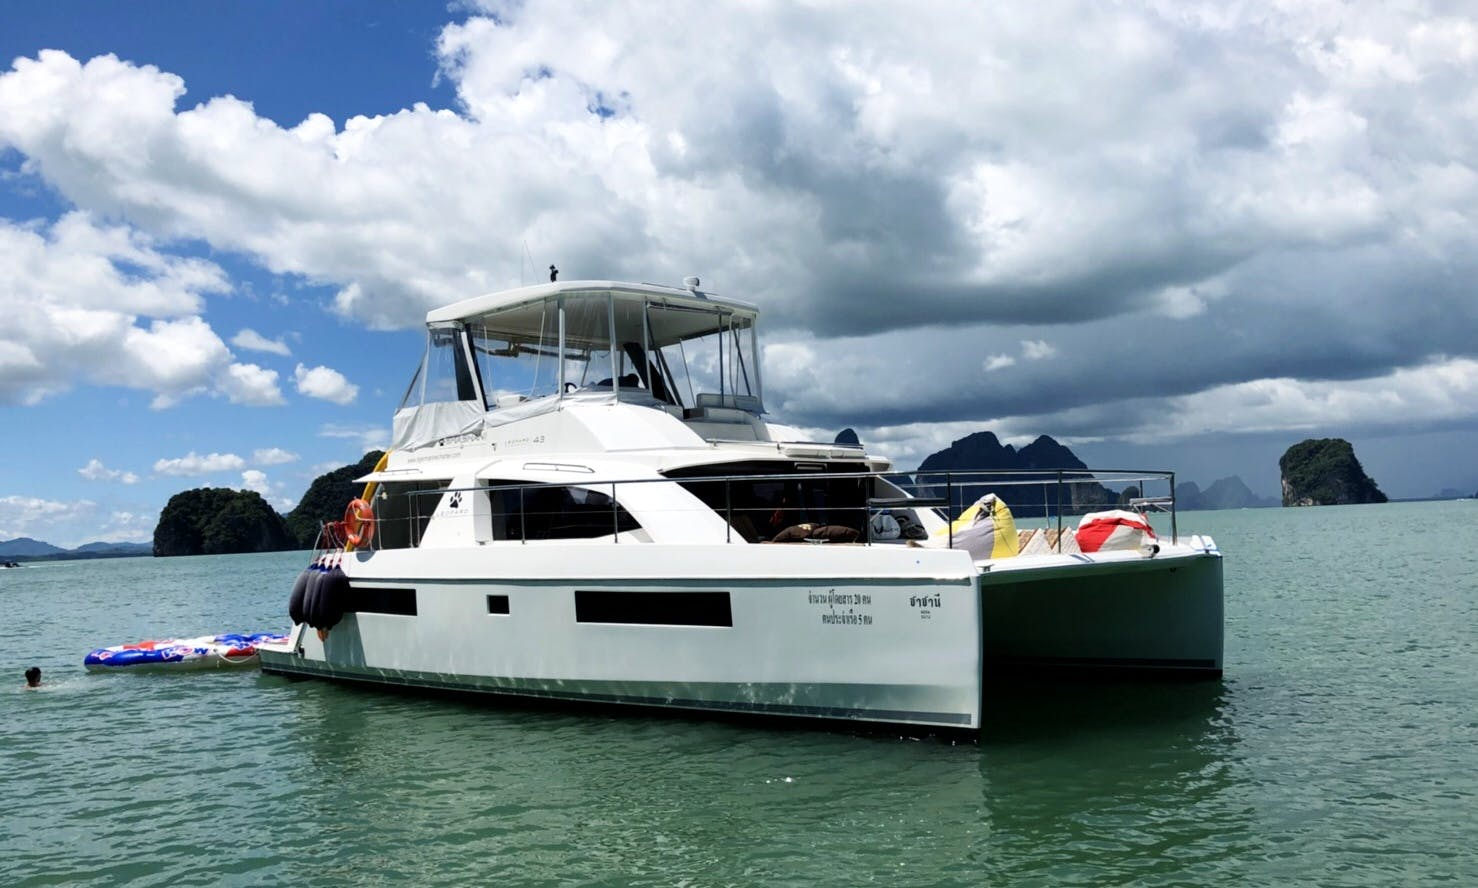 Day Cruiser to Overnight Charter on Leopard 43 Catamaran in Phuket, Thailand